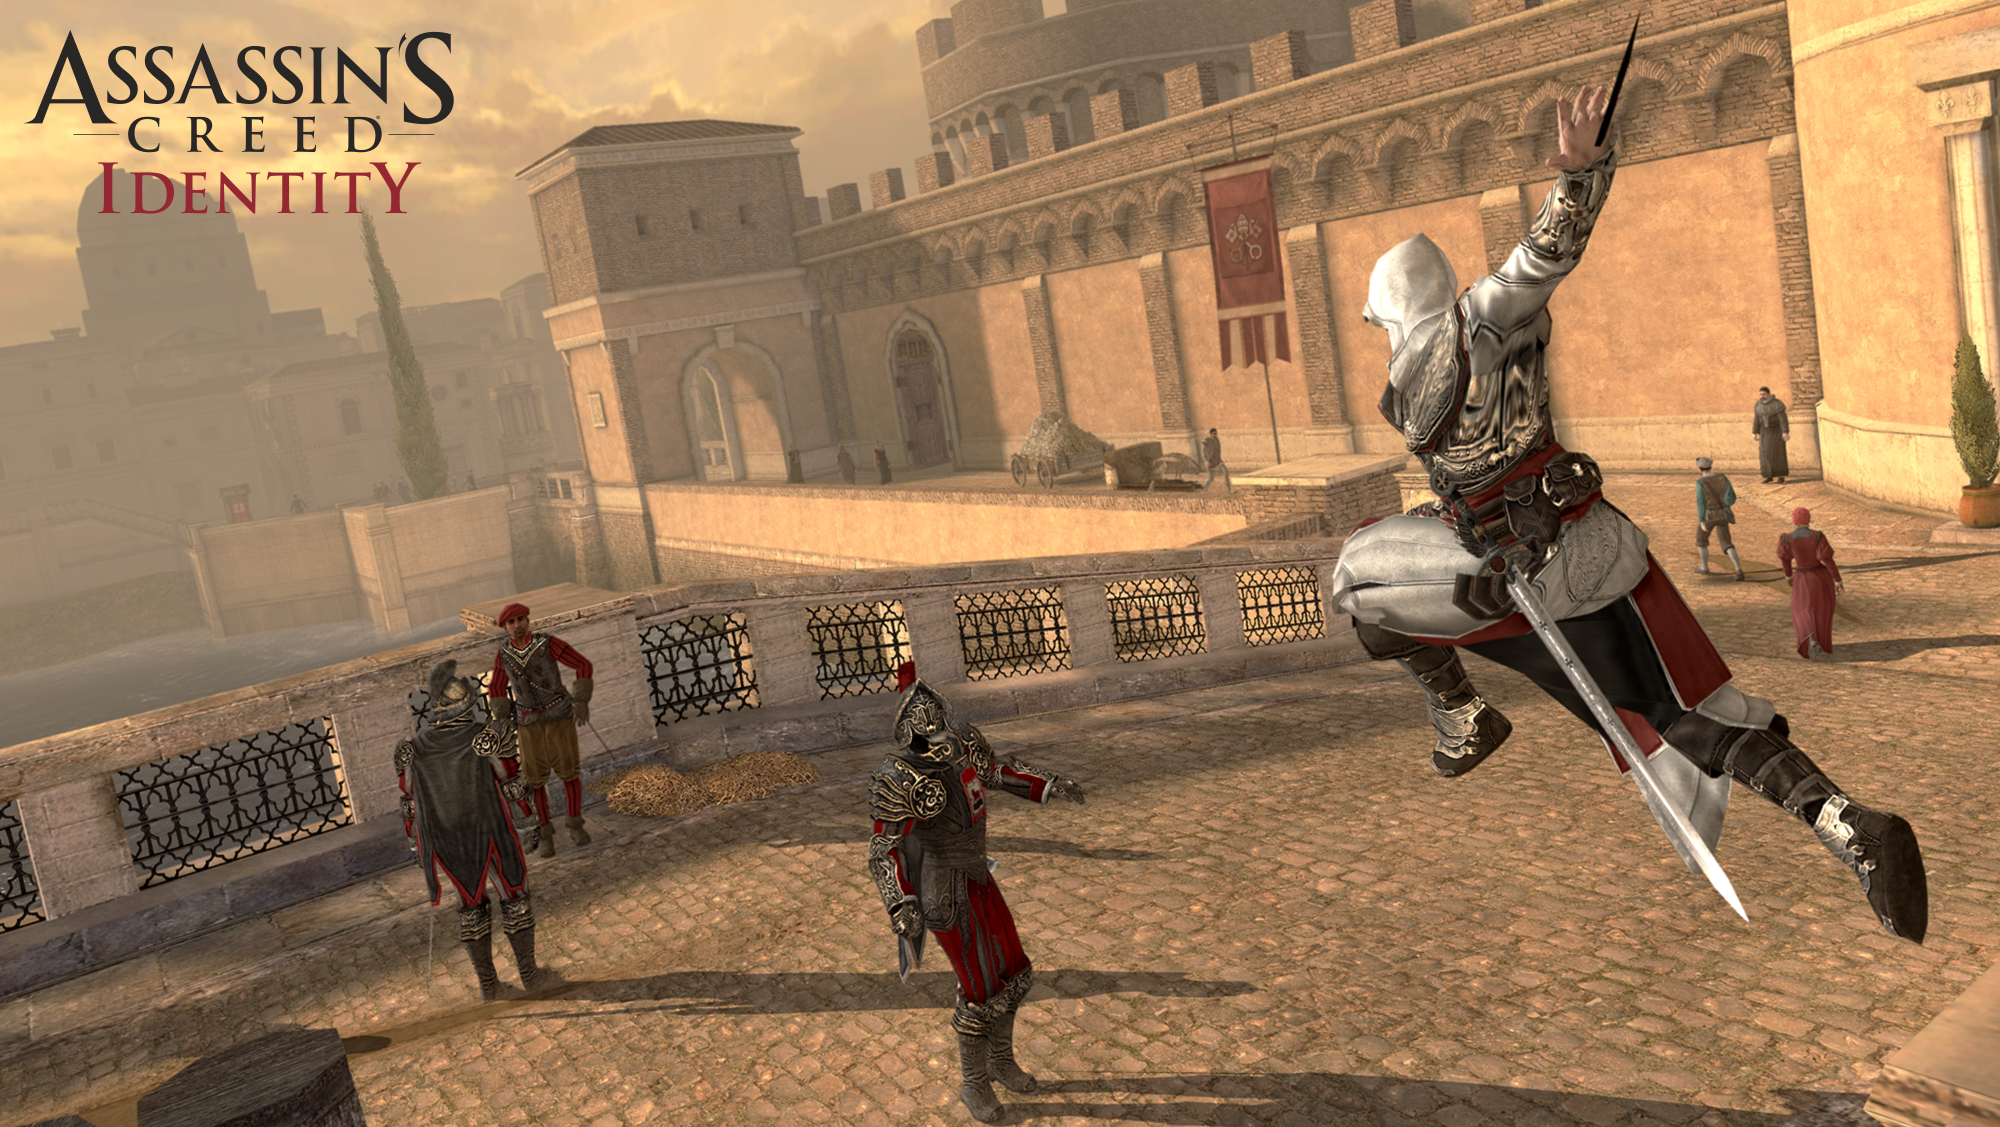 Assassin's Creed Identity brings the series to iOS for the first time